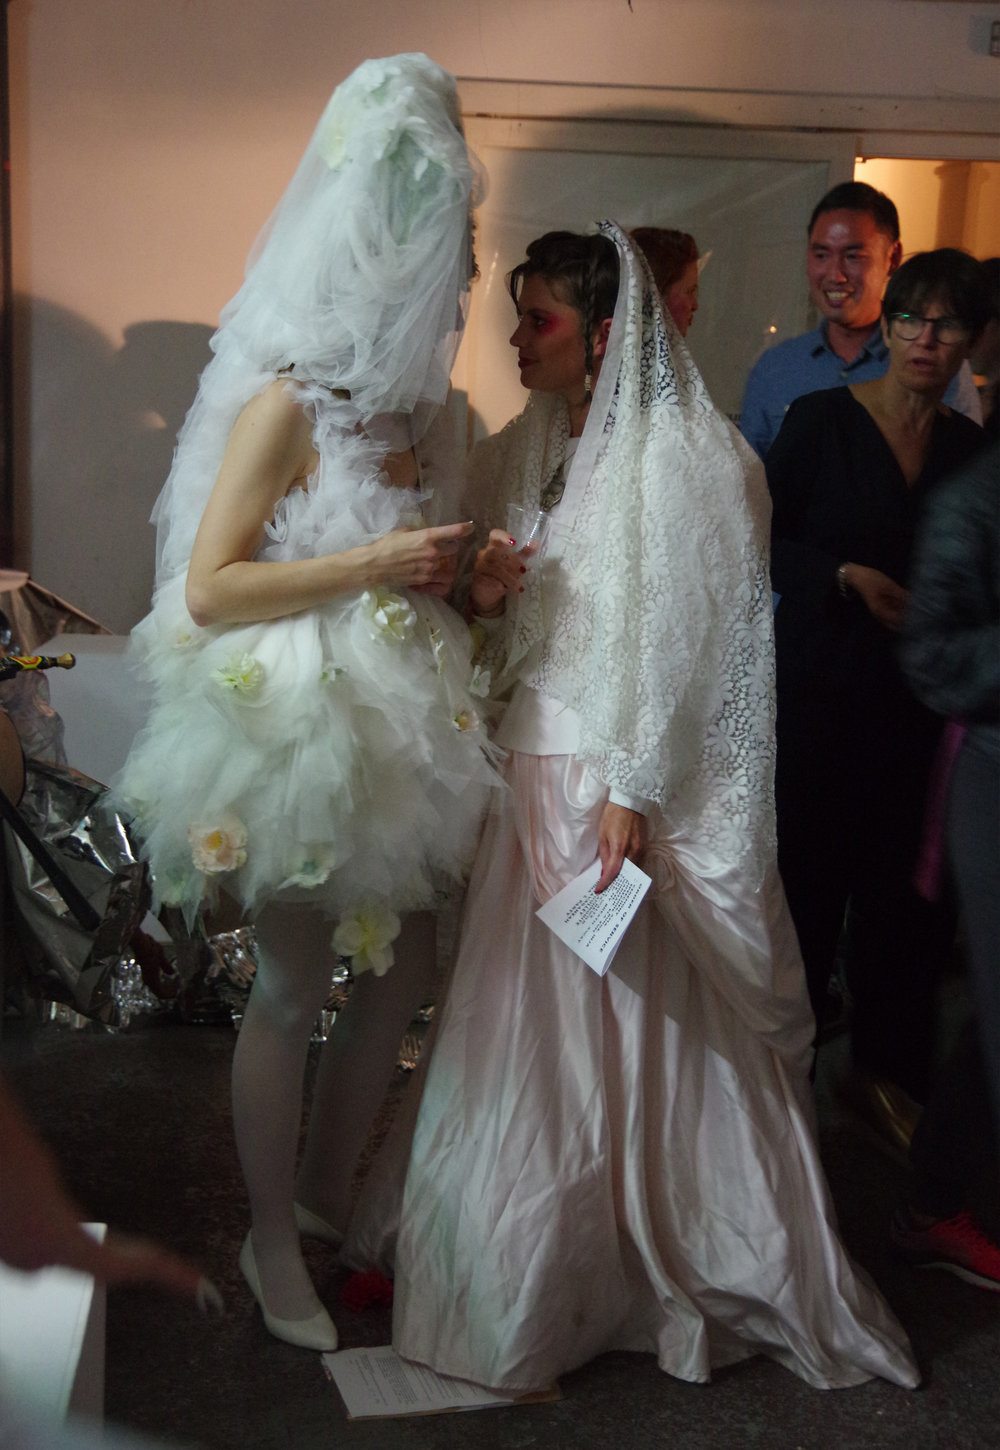 brexit wedding, live art, performance, liviarita, london, subculture, underground, pop, theatre, experimental, contemporary, arts, performance art, crazyiness, youth, art project